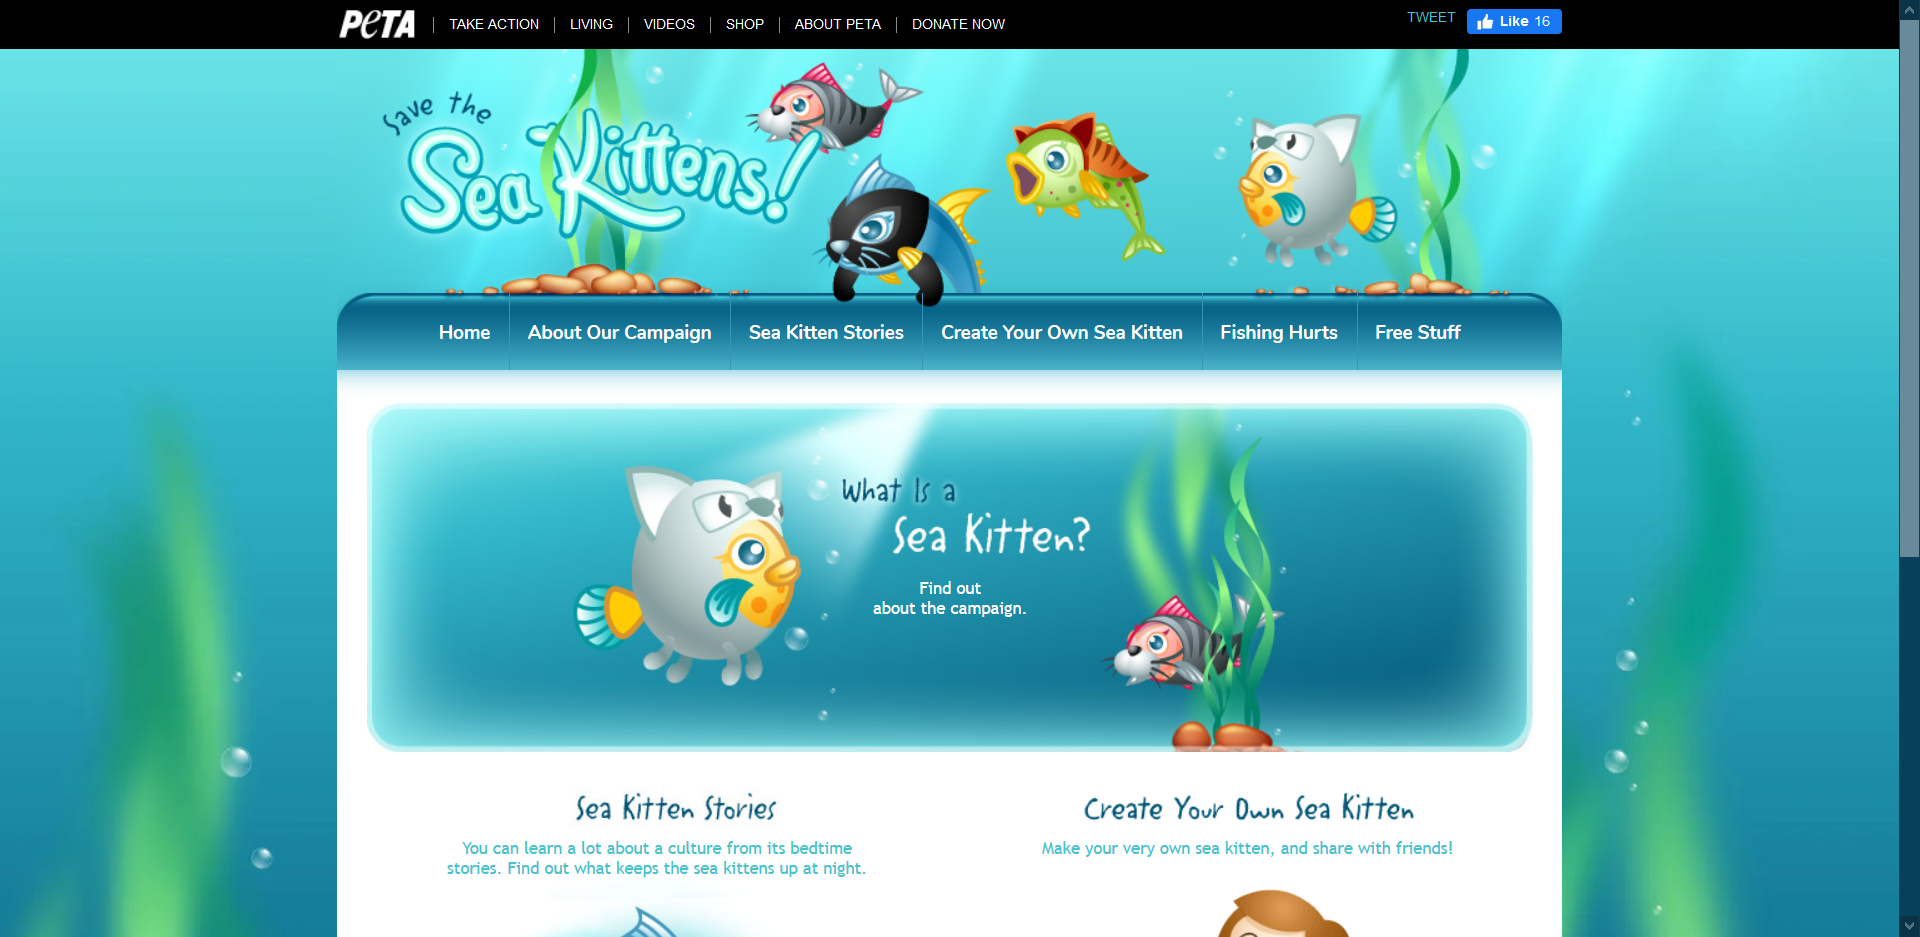 Save The Sea Kittens!